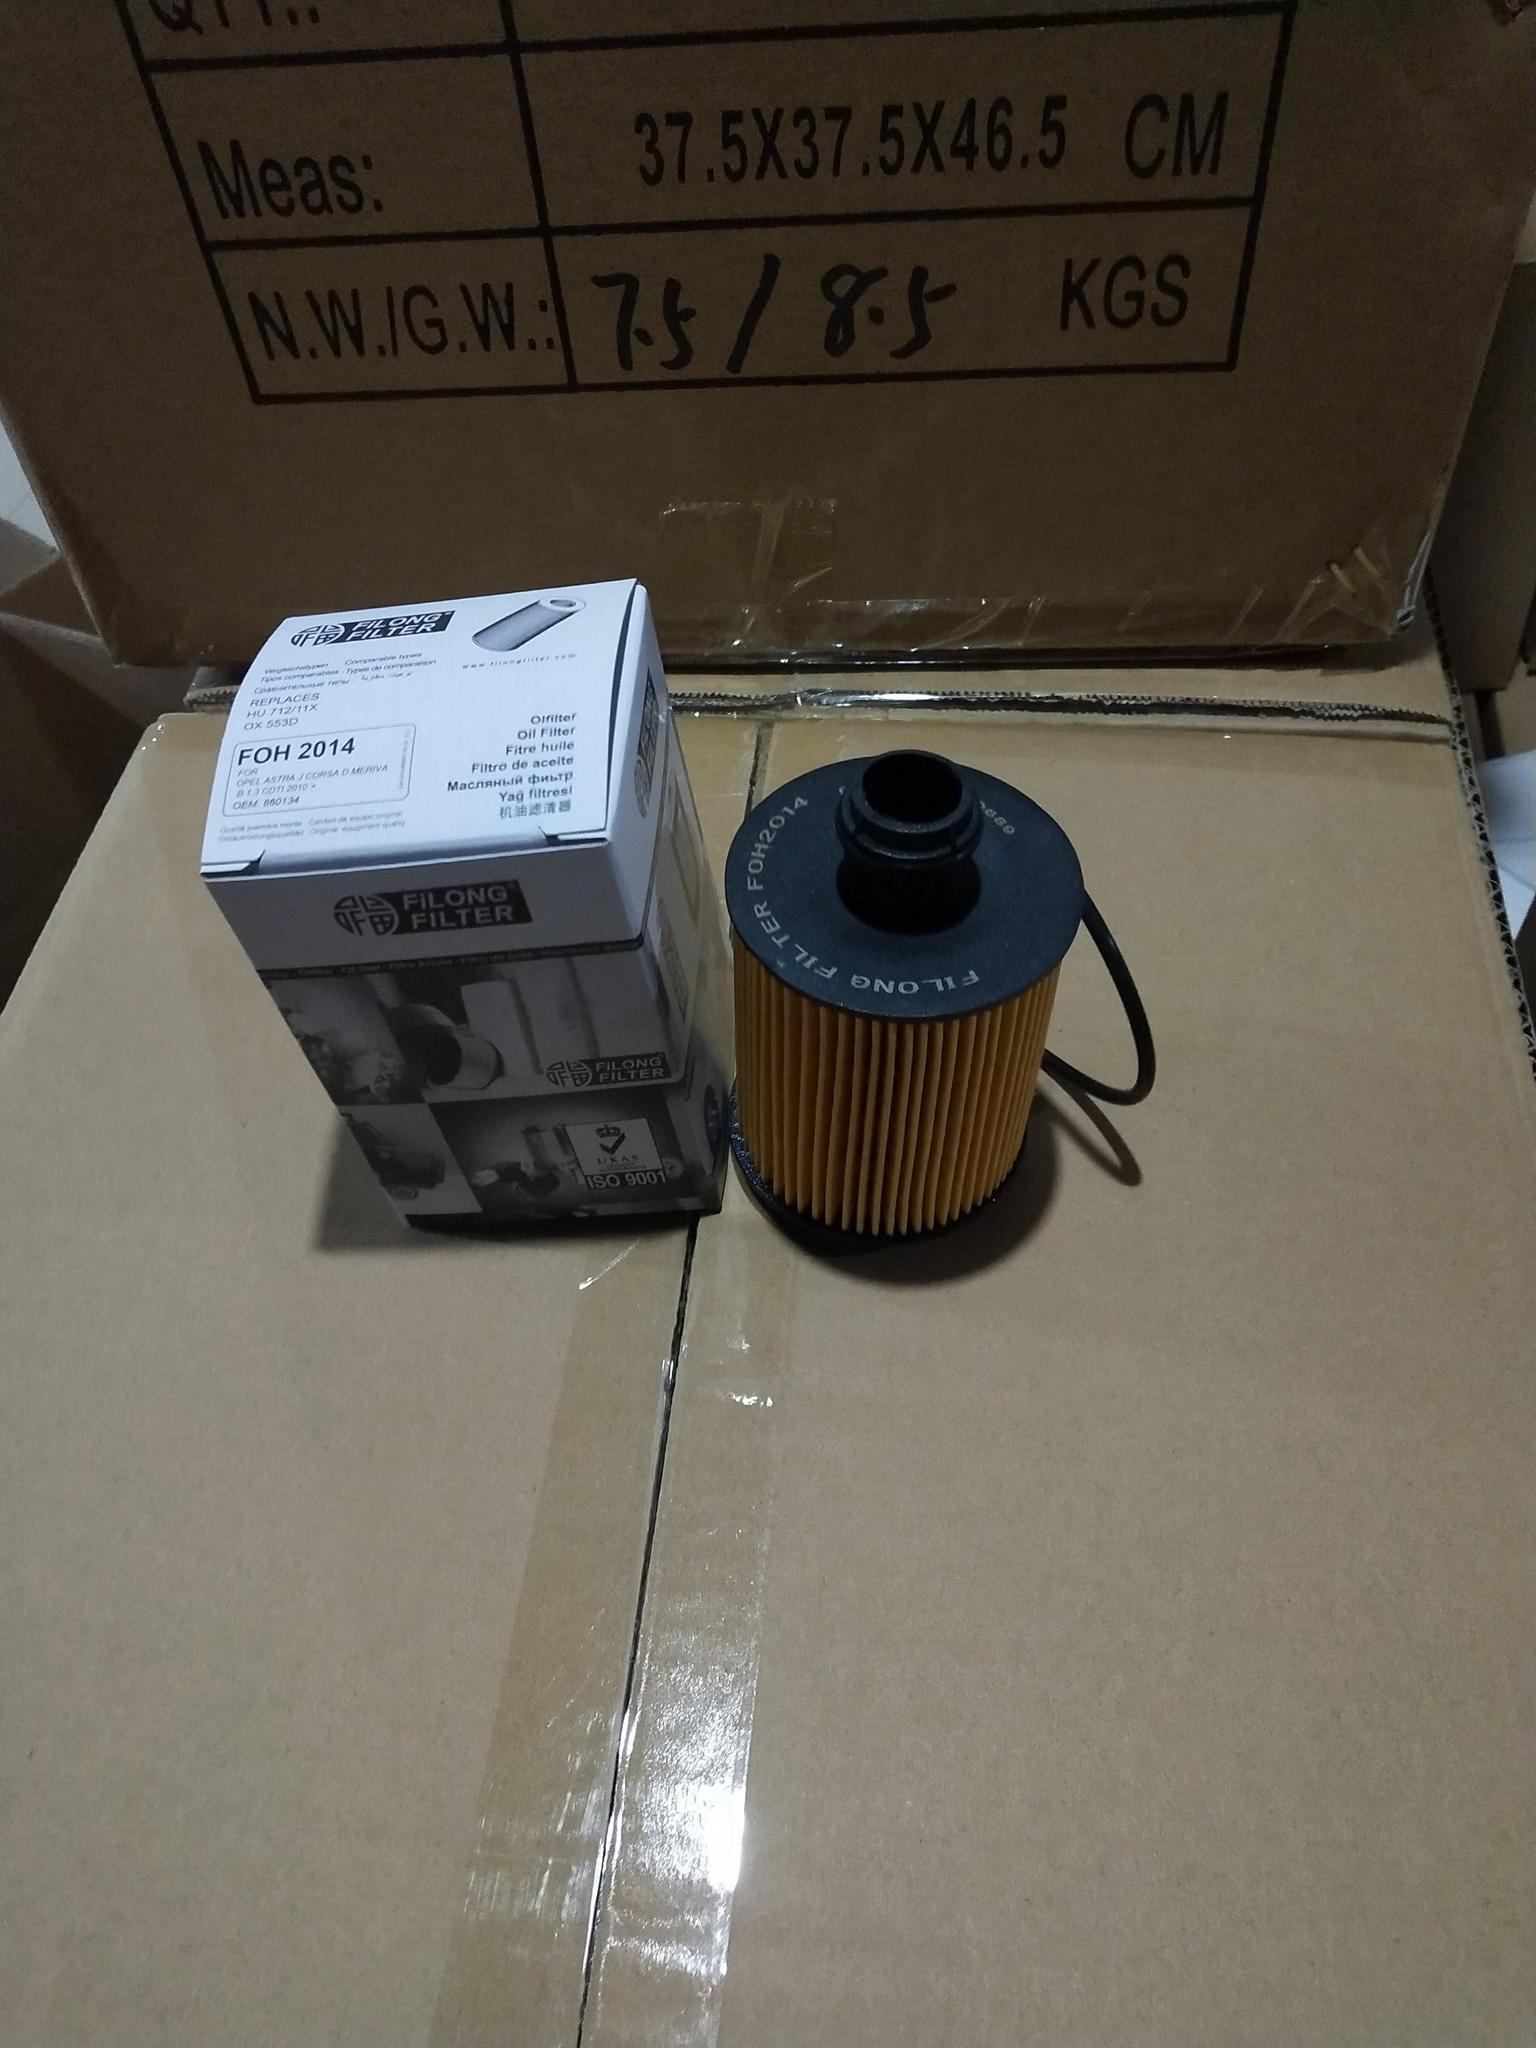 HU712/11x OX553D  OE682/2 E157HD227  55207208 CH10623ECO ELH4390 FOP241 WL7464 55206816  FILONG Filter FO-4008 for FIAT 55214974 71751114 71751127 71751128 1109CJ